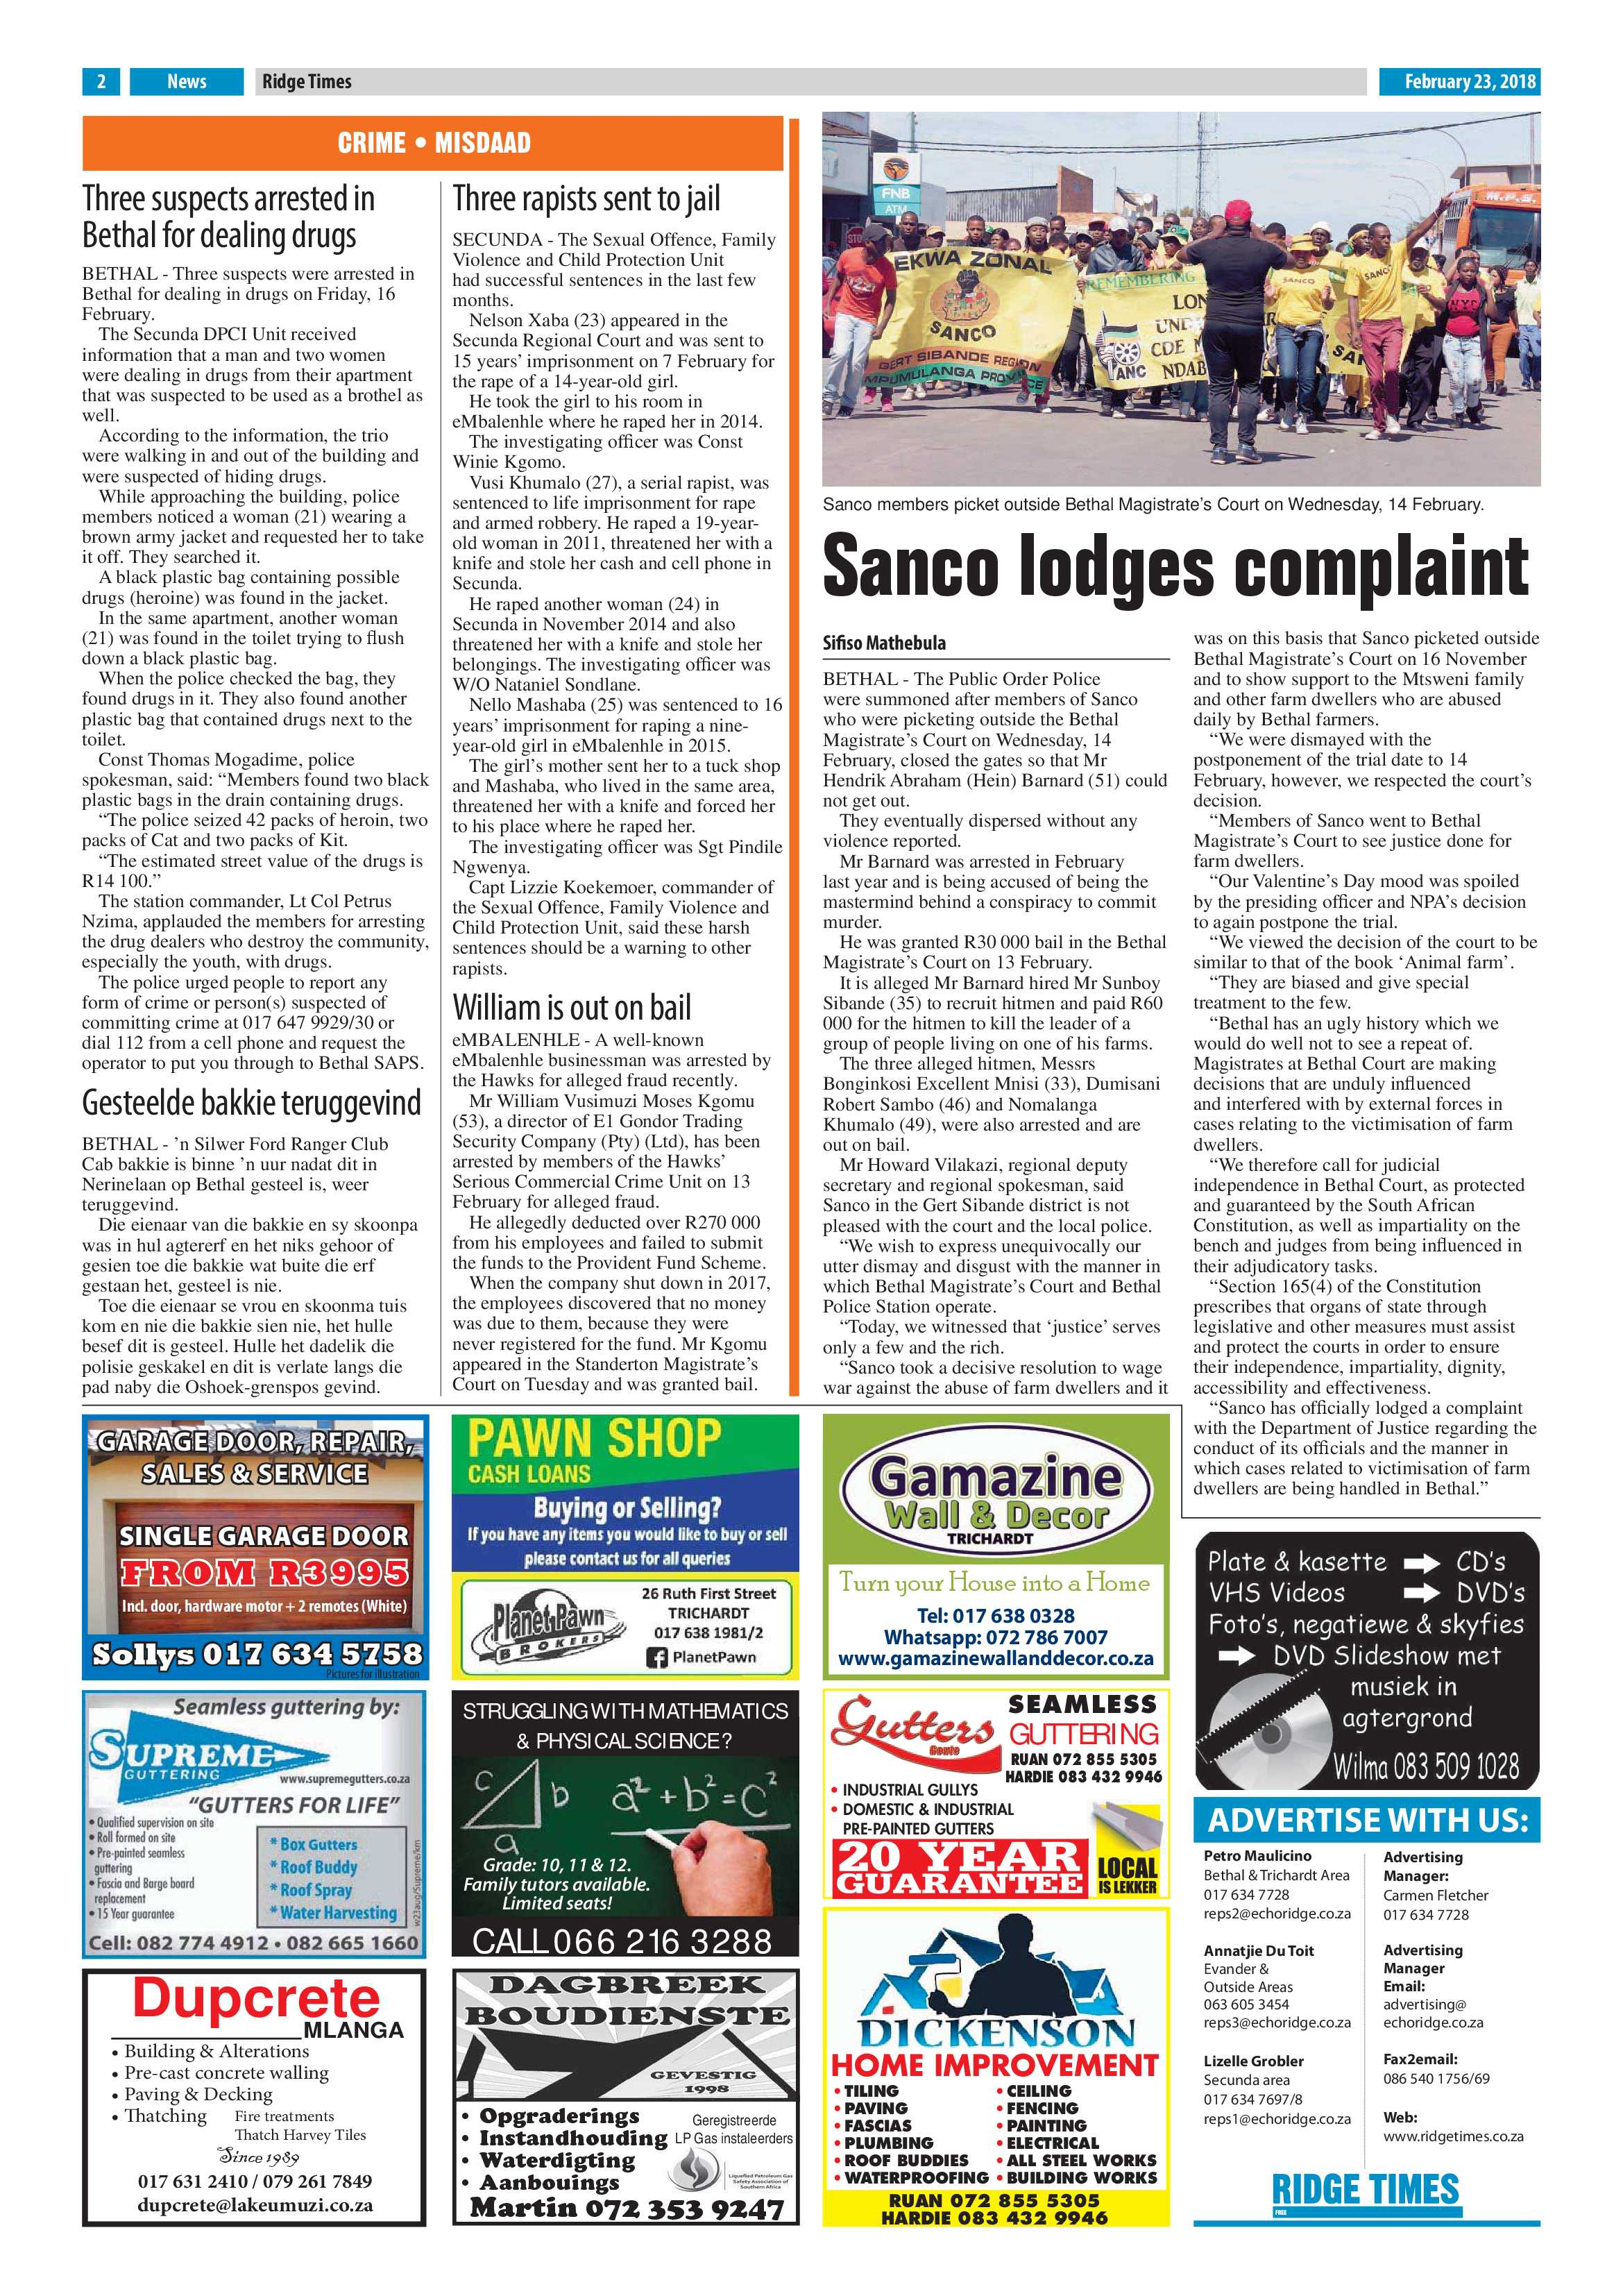 ridge-times-23-february-2018-epapers-page-2